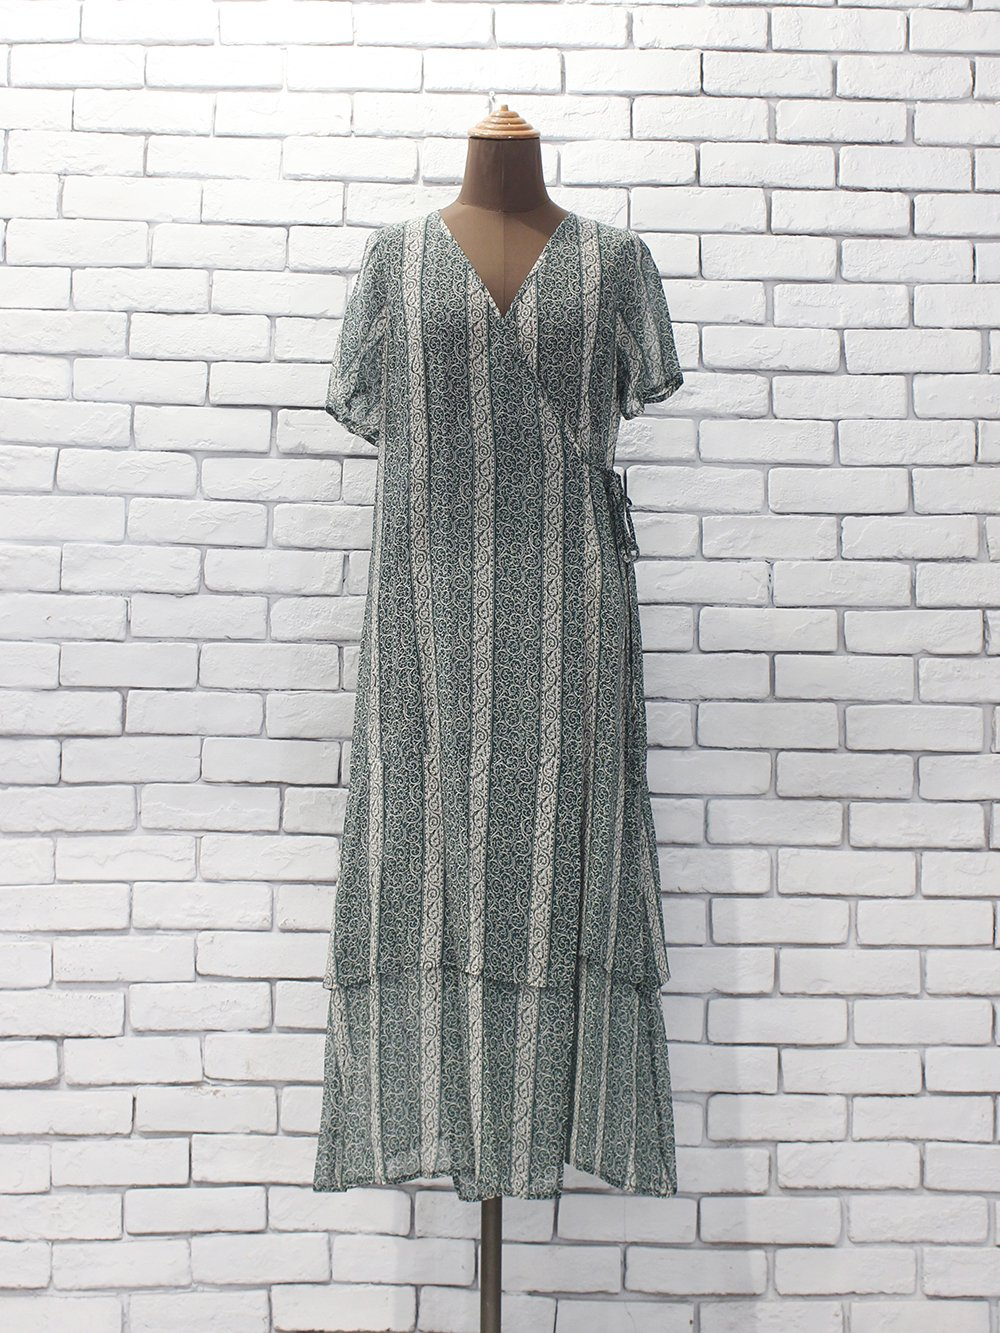 "<img class='new_mark_img1' src='https://img.shop-pro.jp/img/new/icons8.gif' style='border:none;display:inline;margin:0px;padding:0px;width:auto;' />Needles "" Wrap Dress - Cupra Chiffon / Pt. (arabesquest) """